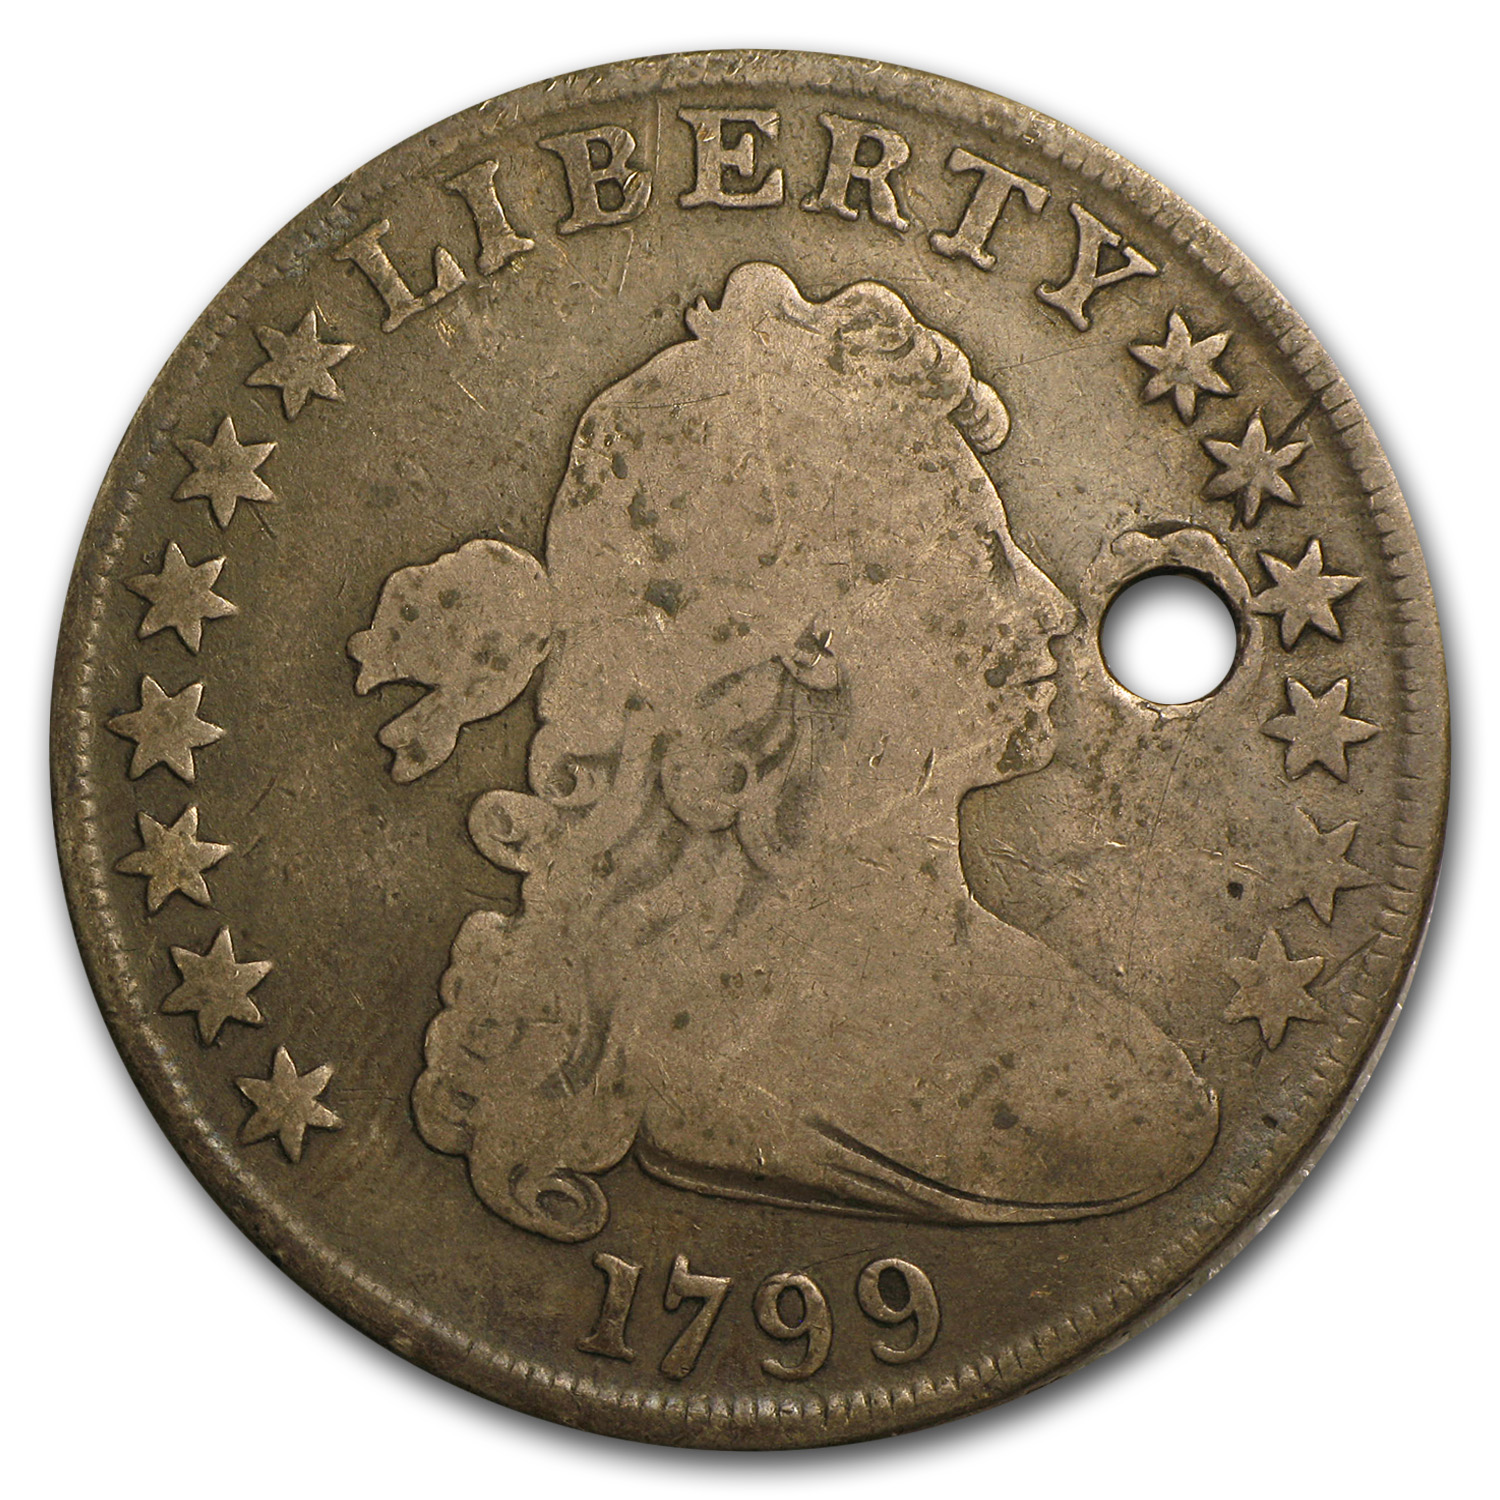 1799 Bust Dollar VG Details (Holed)